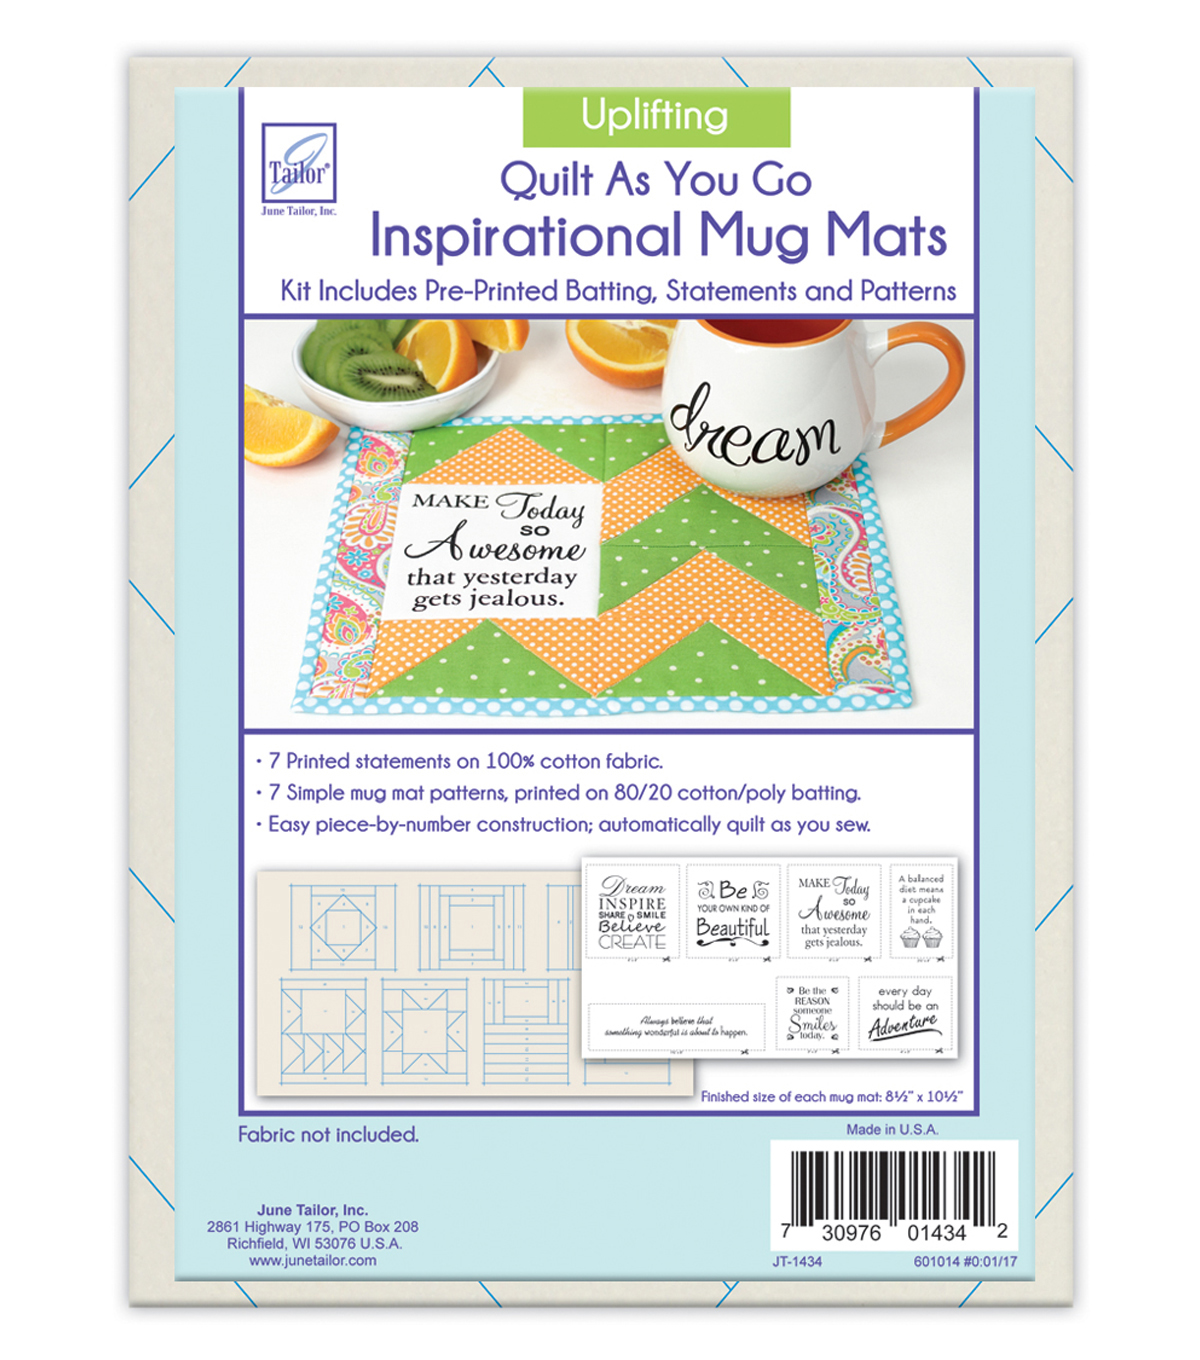 June Tailor Inspirational Mug Mats Uplifting Series